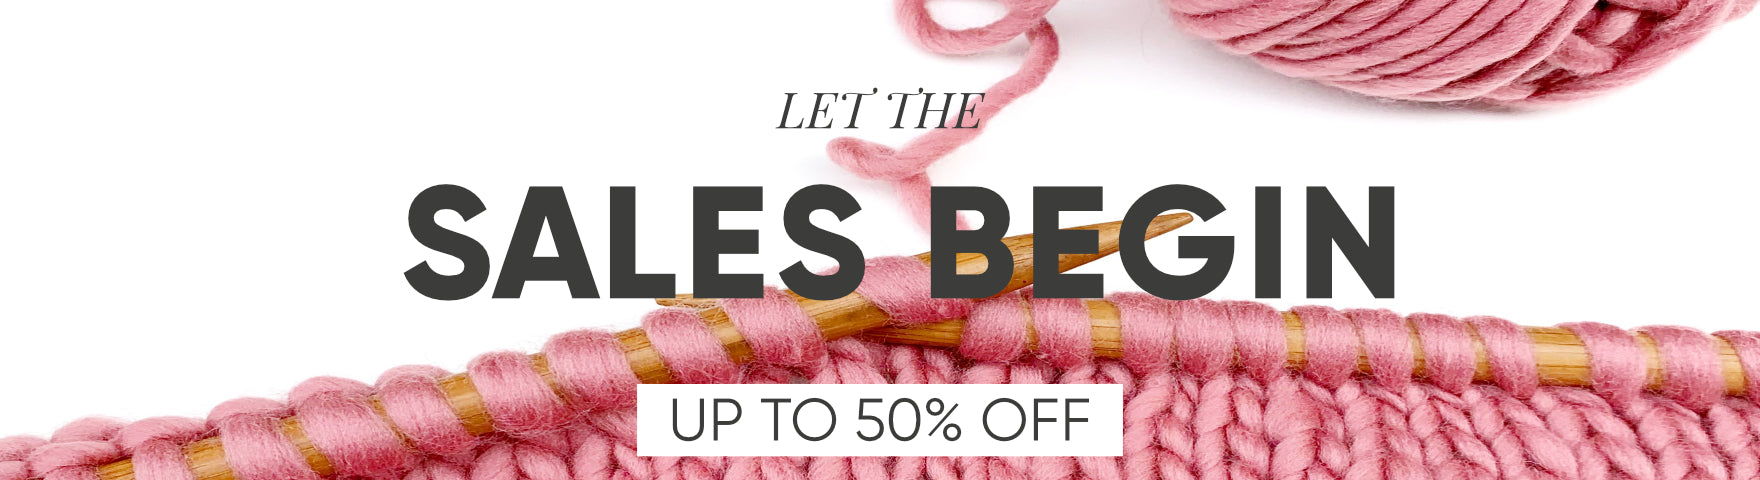 Let The Sales Begin - Up to 50% off